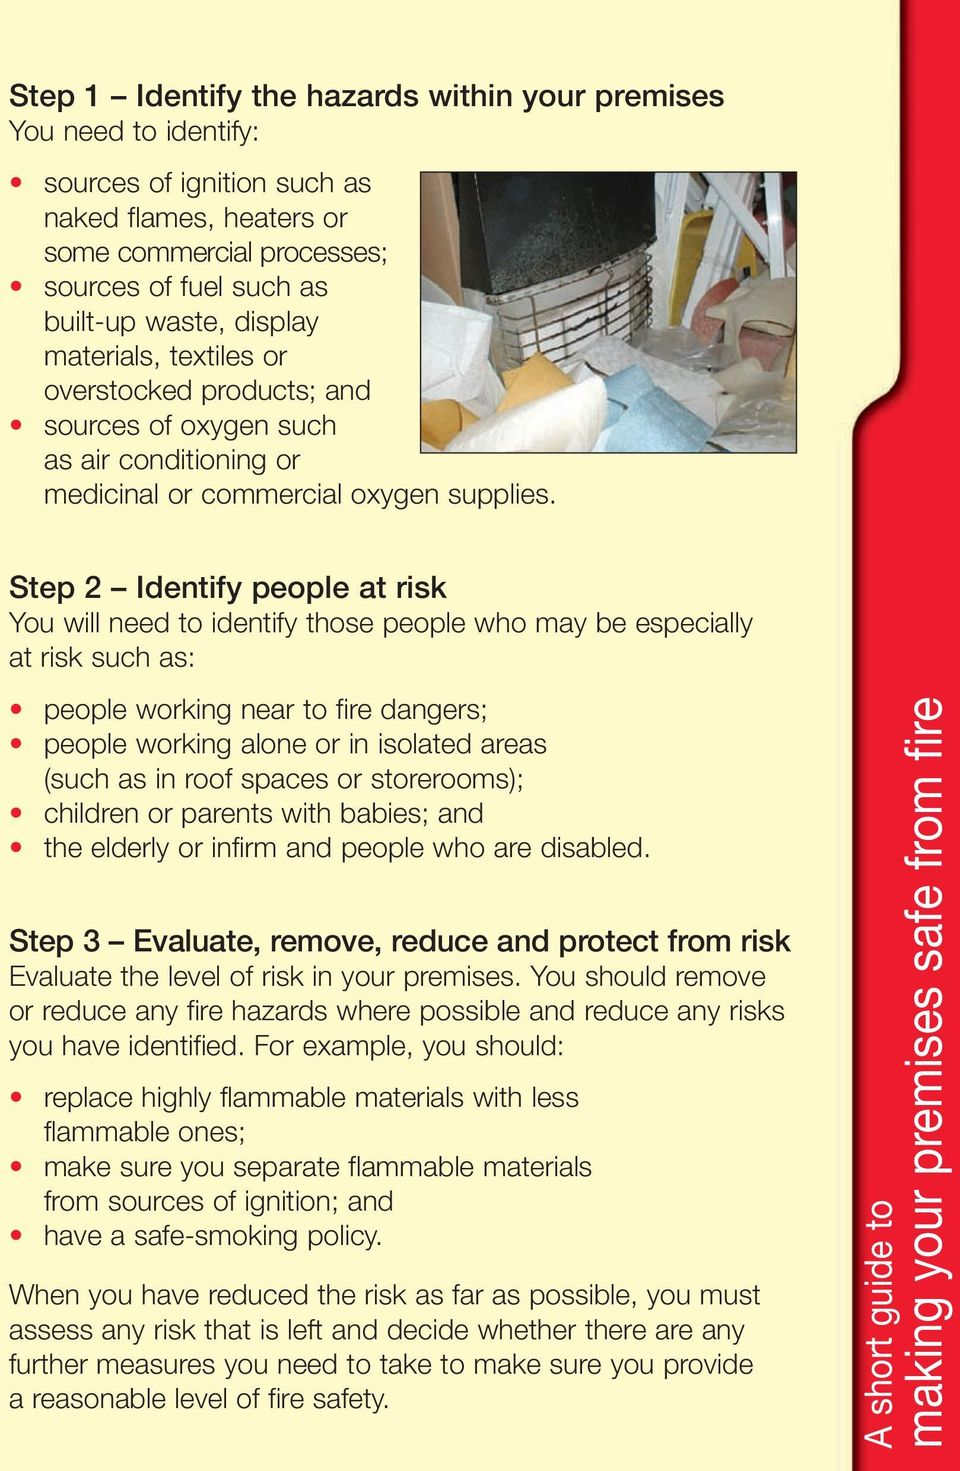 Step 2 Identify people at risk You will need to identify those people who may be especially at risk such as: people working near to fire dangers; people working alone or in isolated areas (such as in